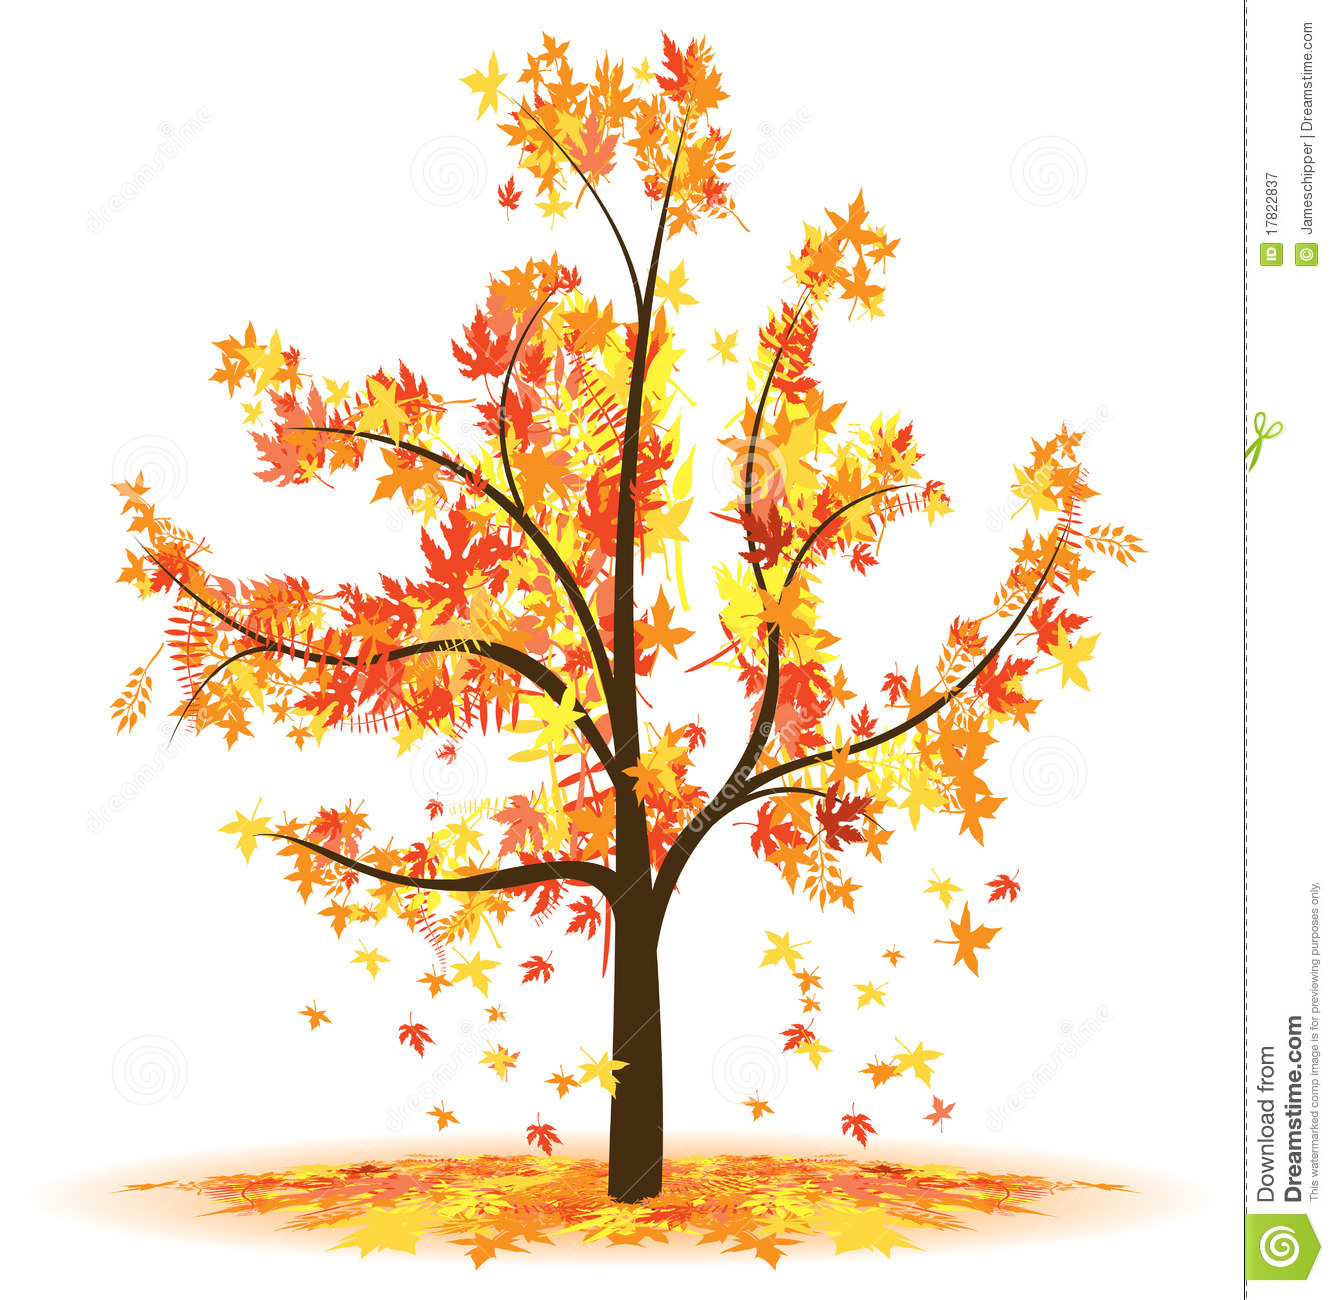 Autumn Clipart - Clipart Kid